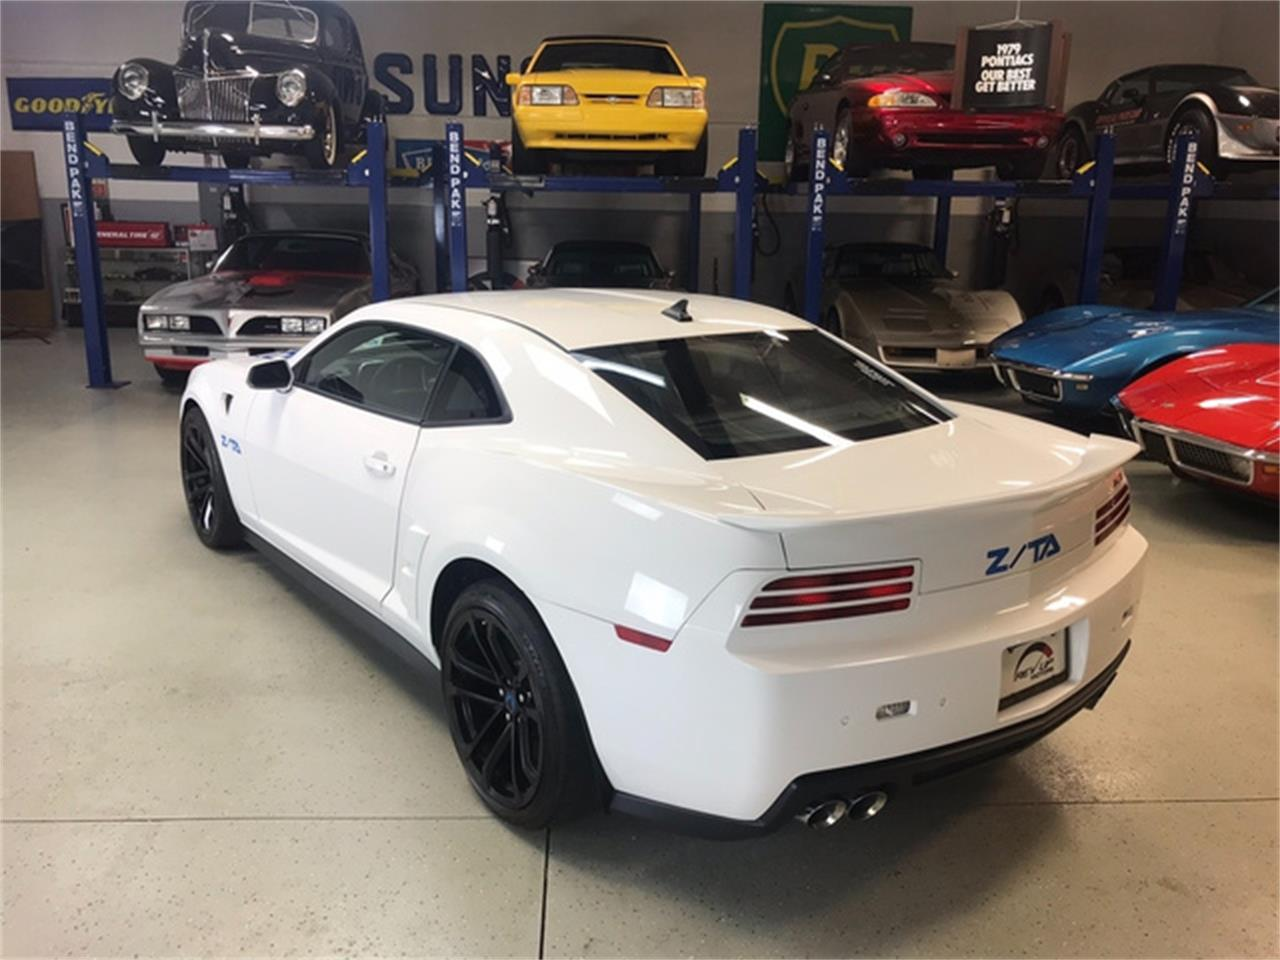 2013 Chevrolet Camaro (CC-1241904) for sale in Shelby Township, Michigan